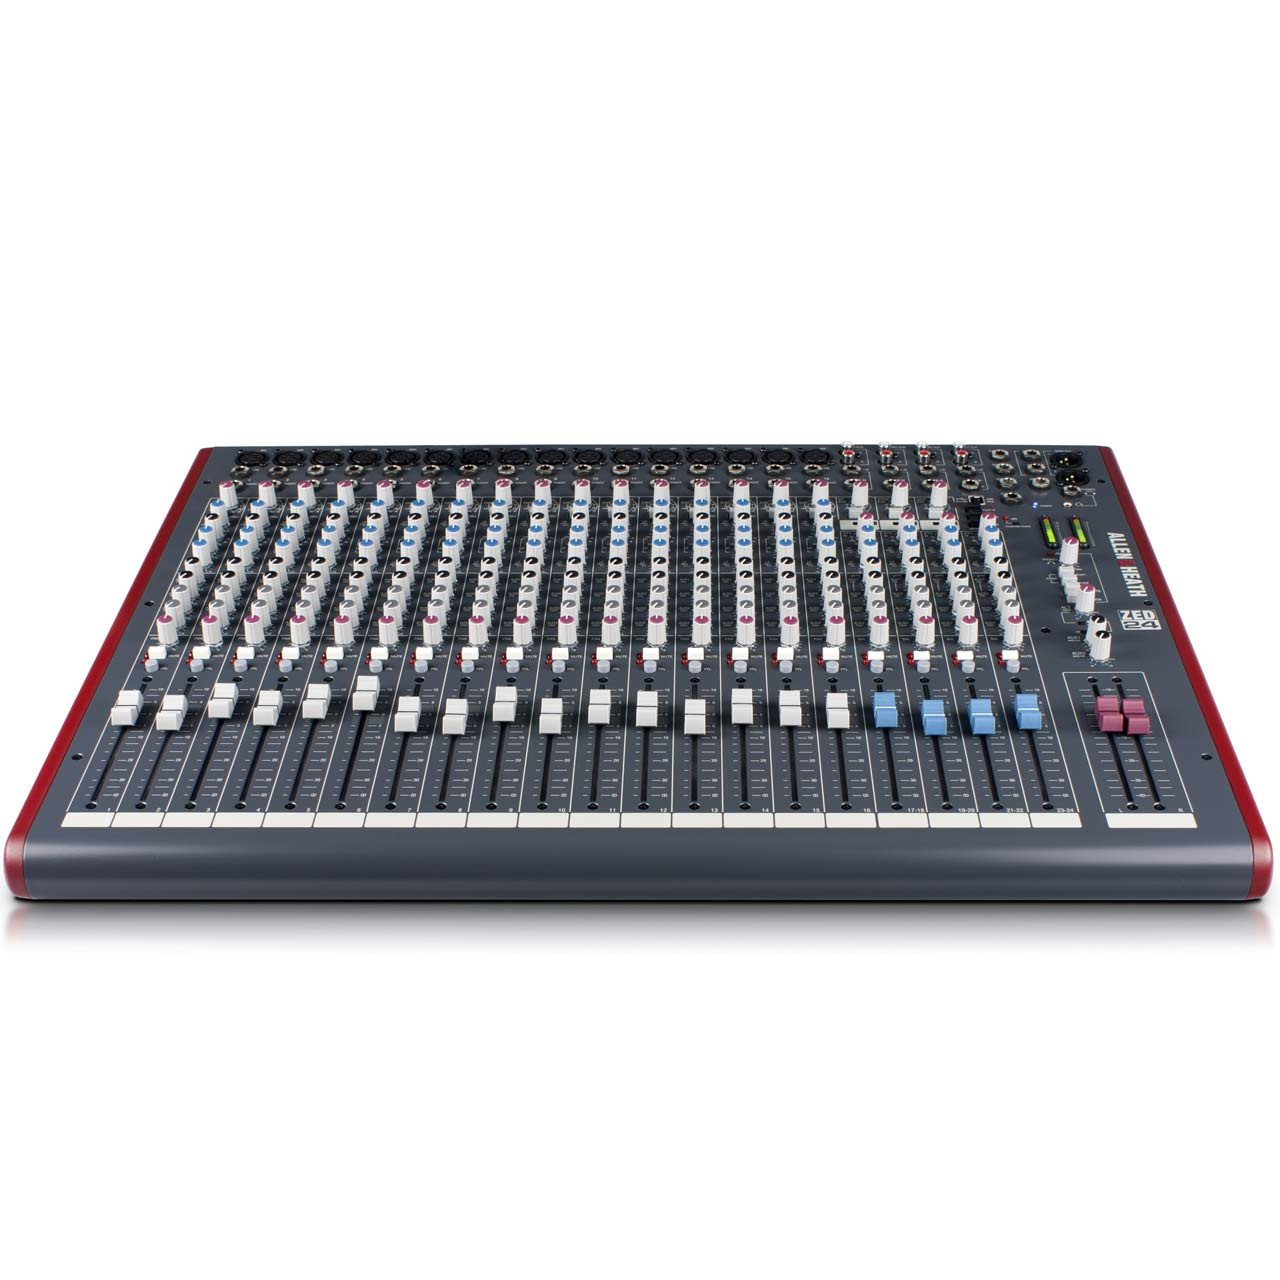 Analog Mixers - Allen & Heath ZED-24 - Analogue Mixer With USB